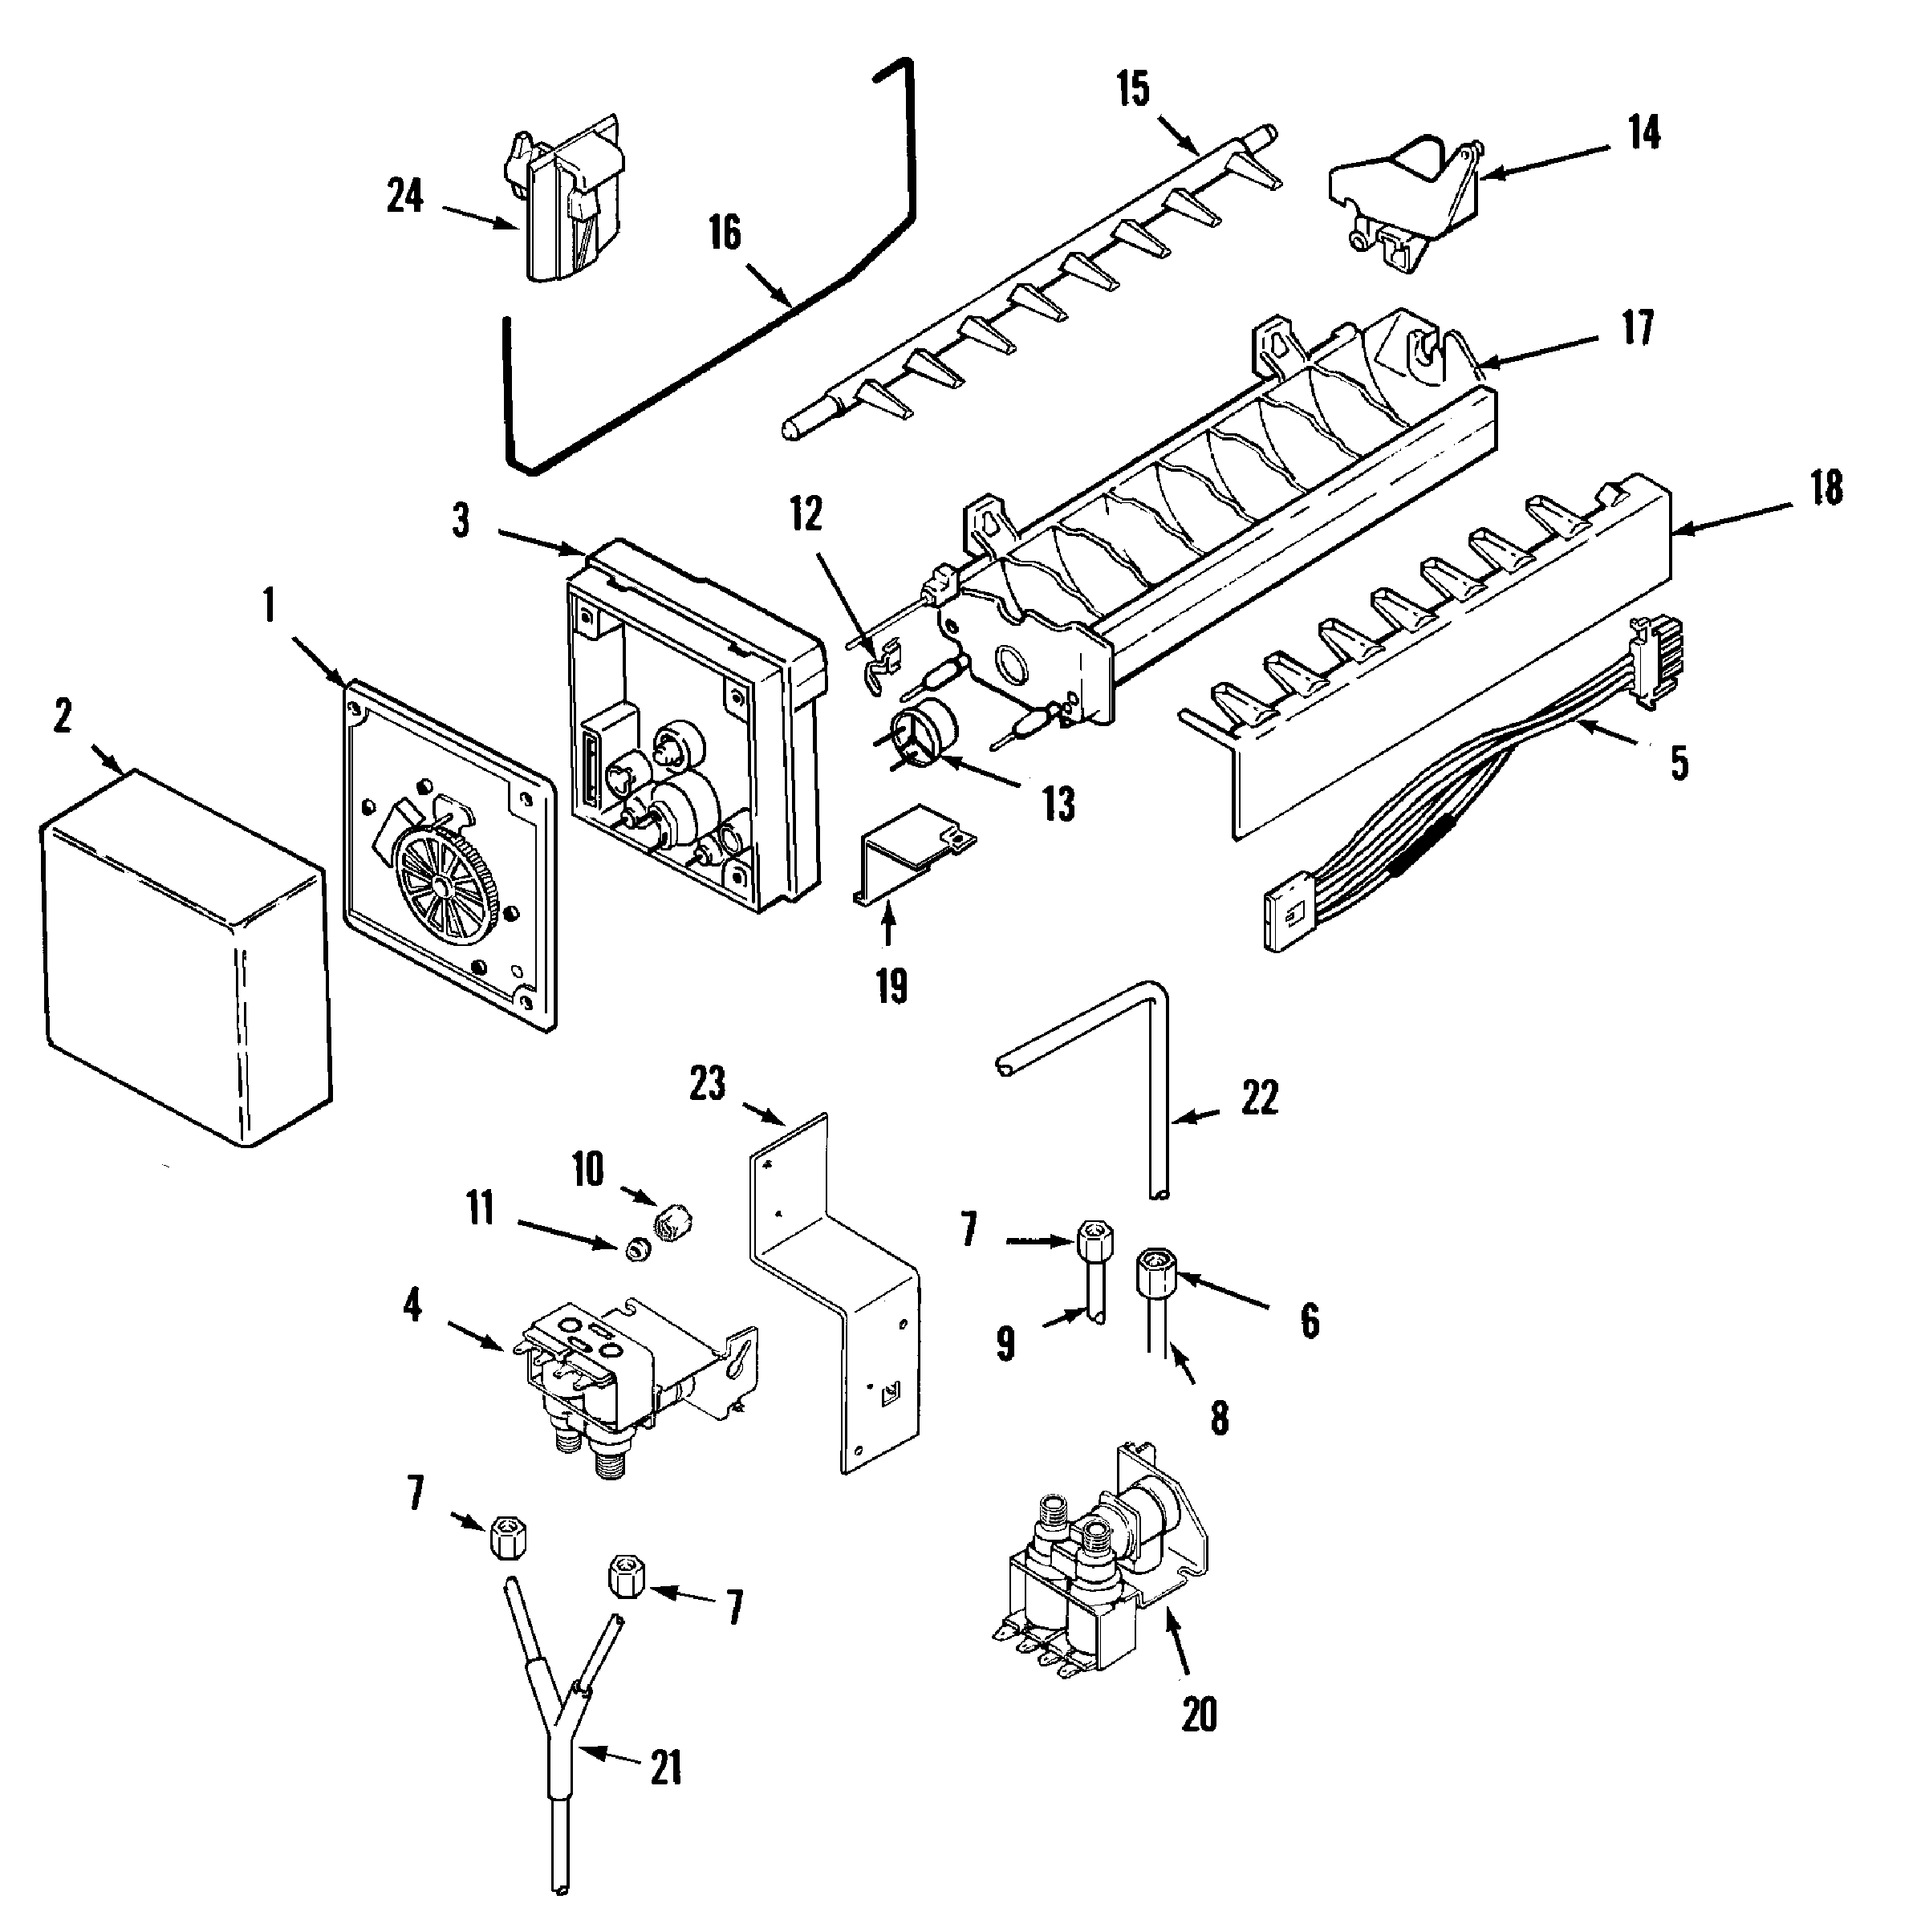 Maytag GC2228EED9 ice maker diagram